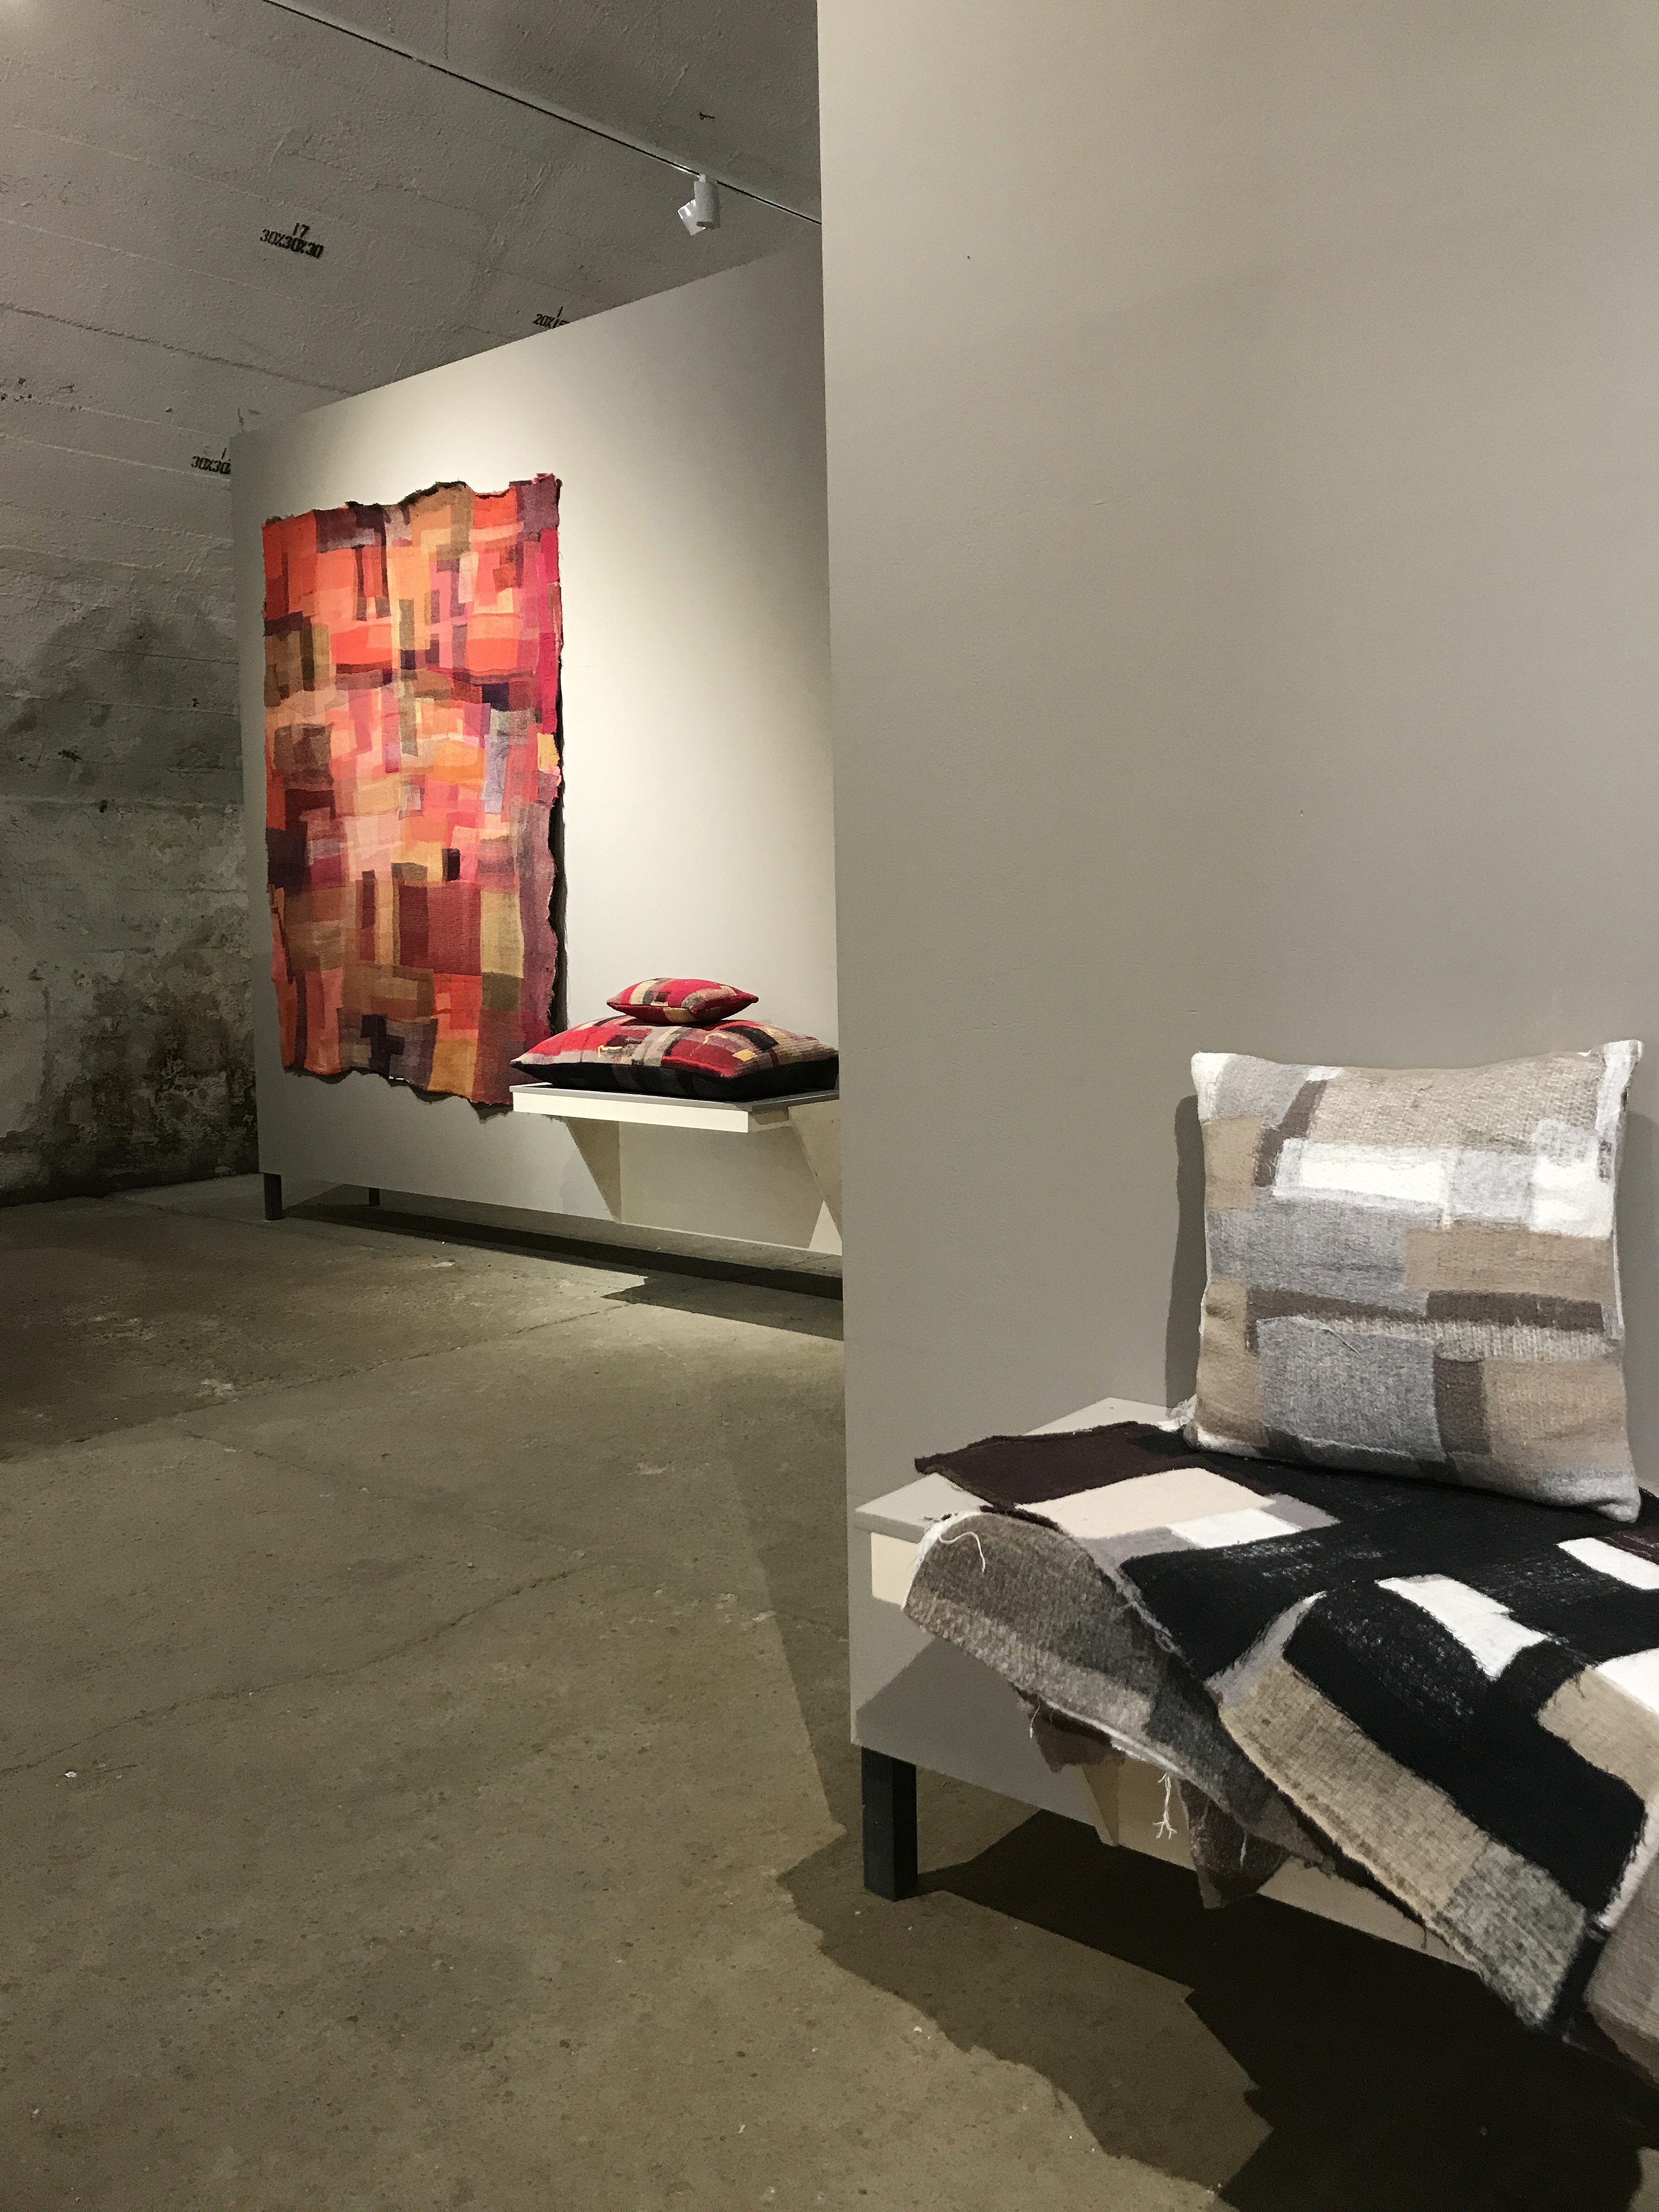 Eclectic Trends | Waste No More - Eileen Fisher-Li Edelkoort - Milan Design Week 2018